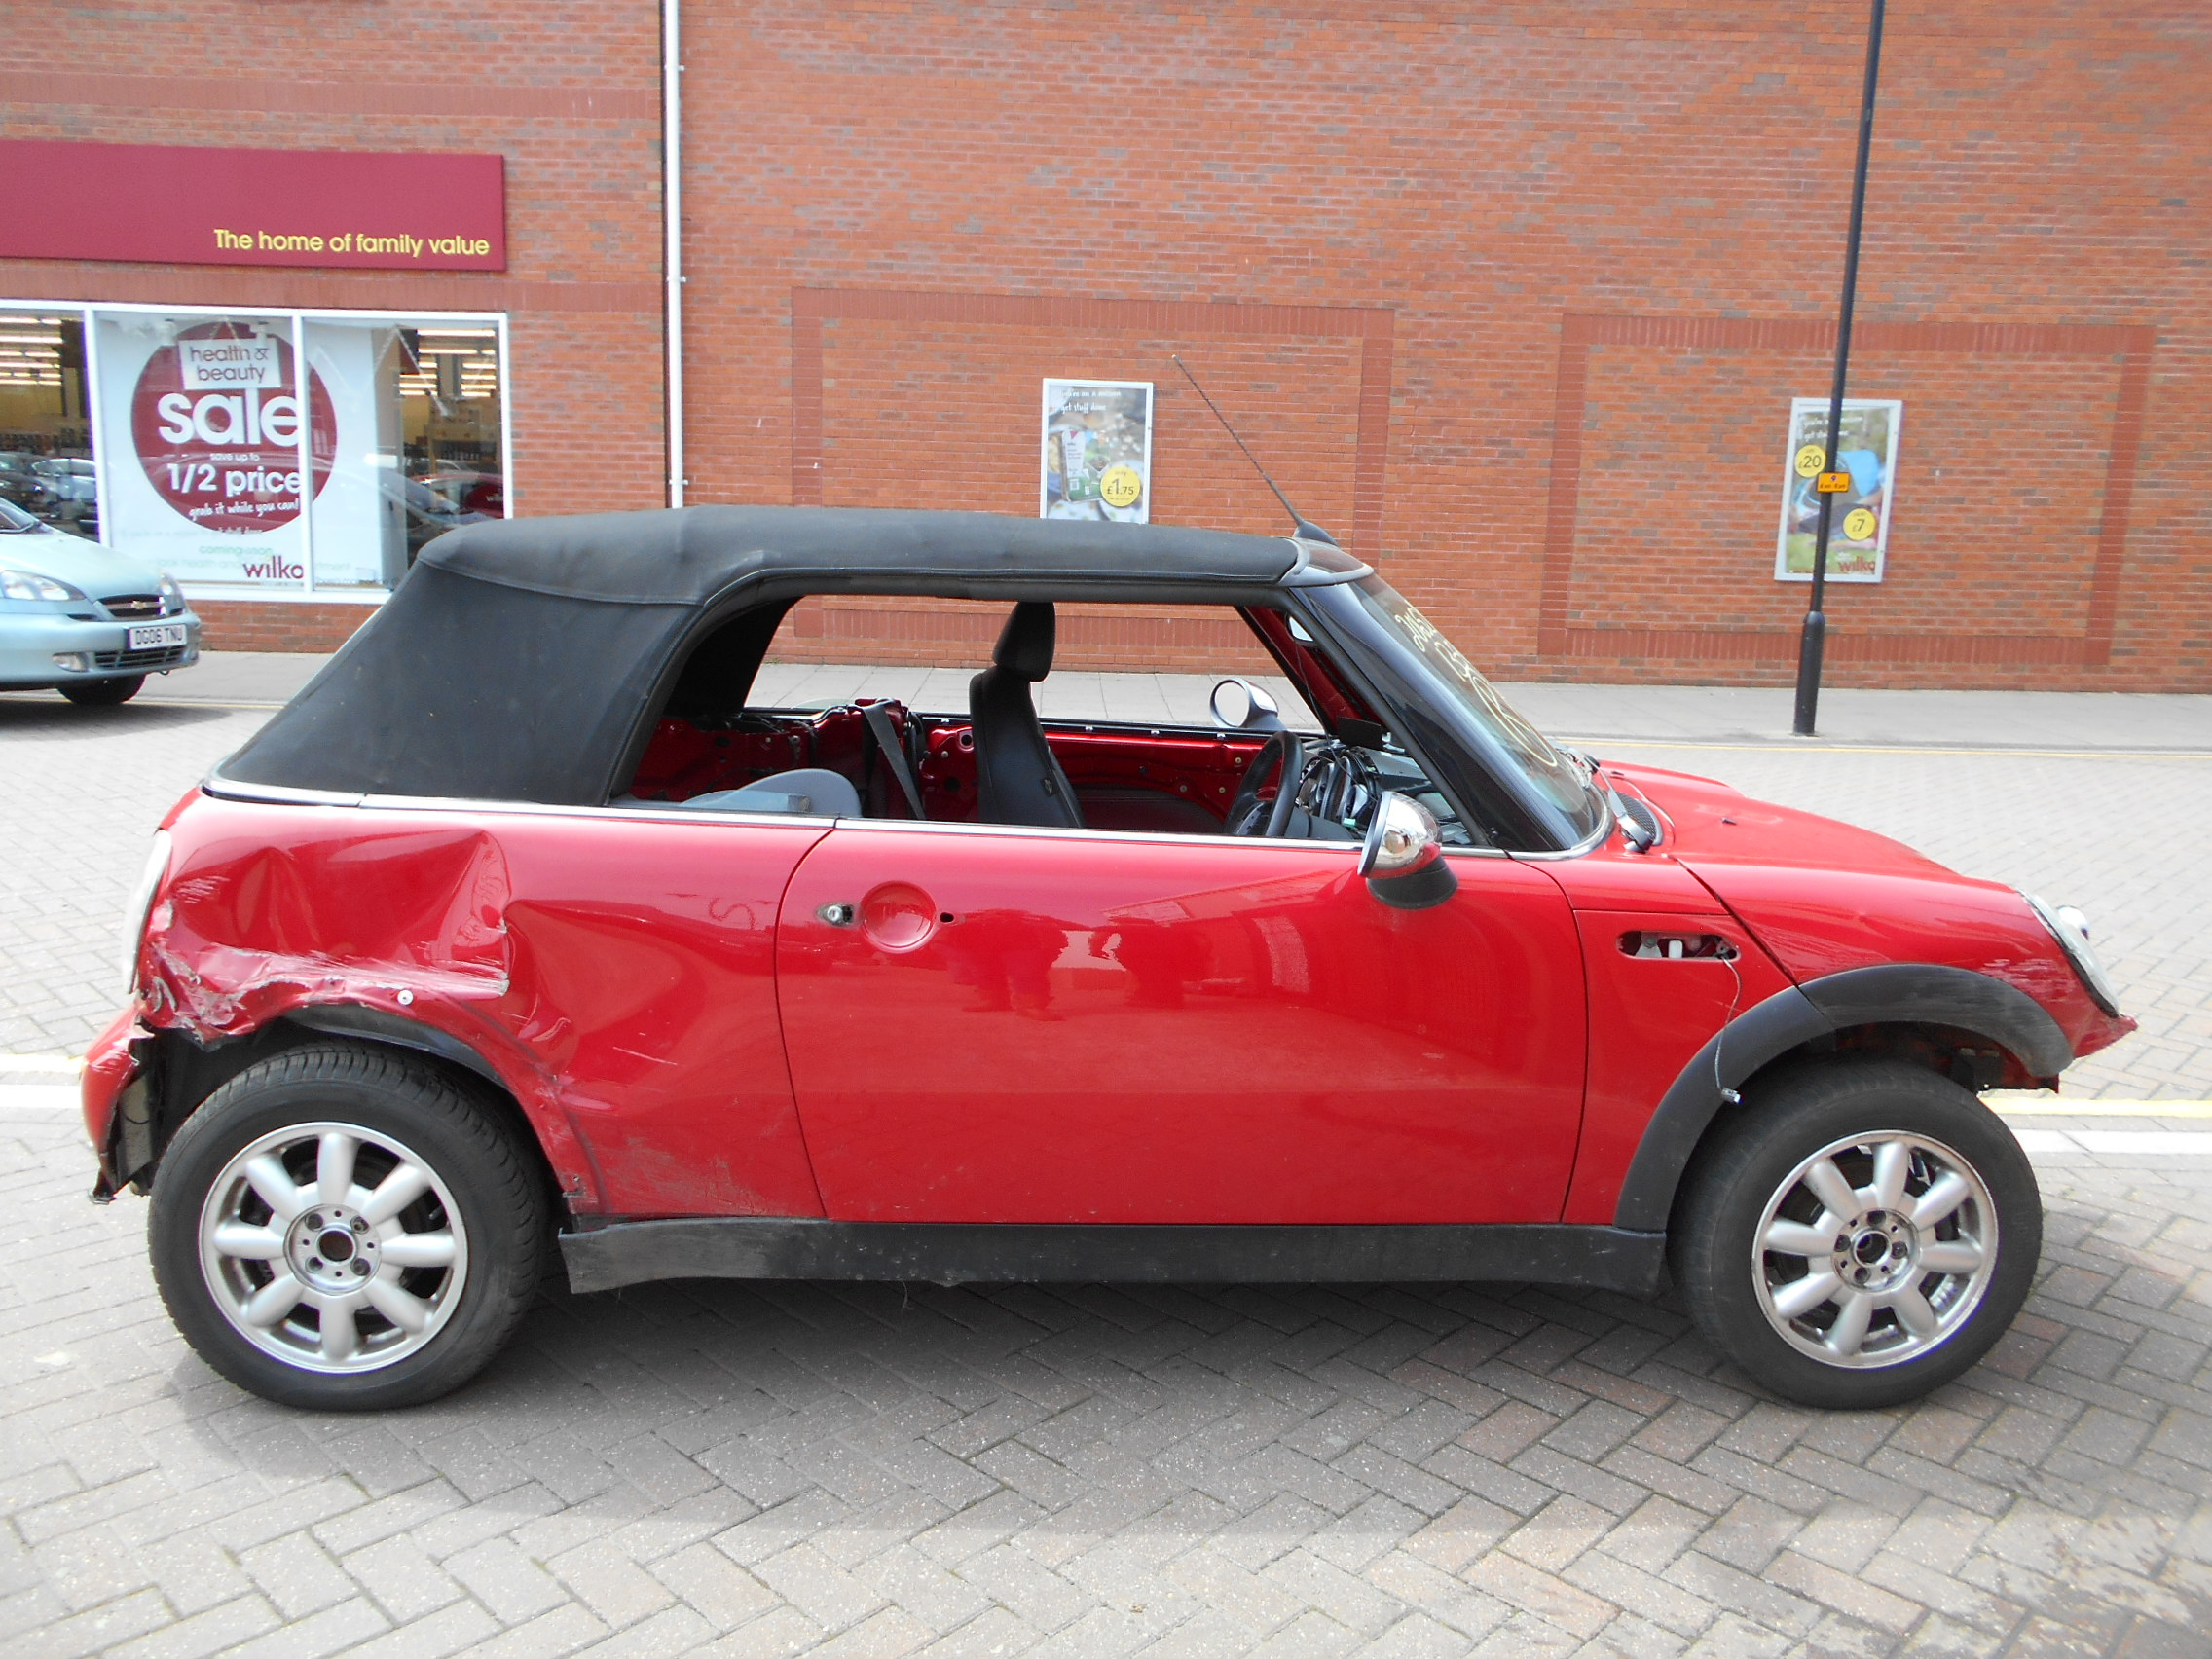 04 Chilli Red 1.6 BMW Mini Convertible - 2